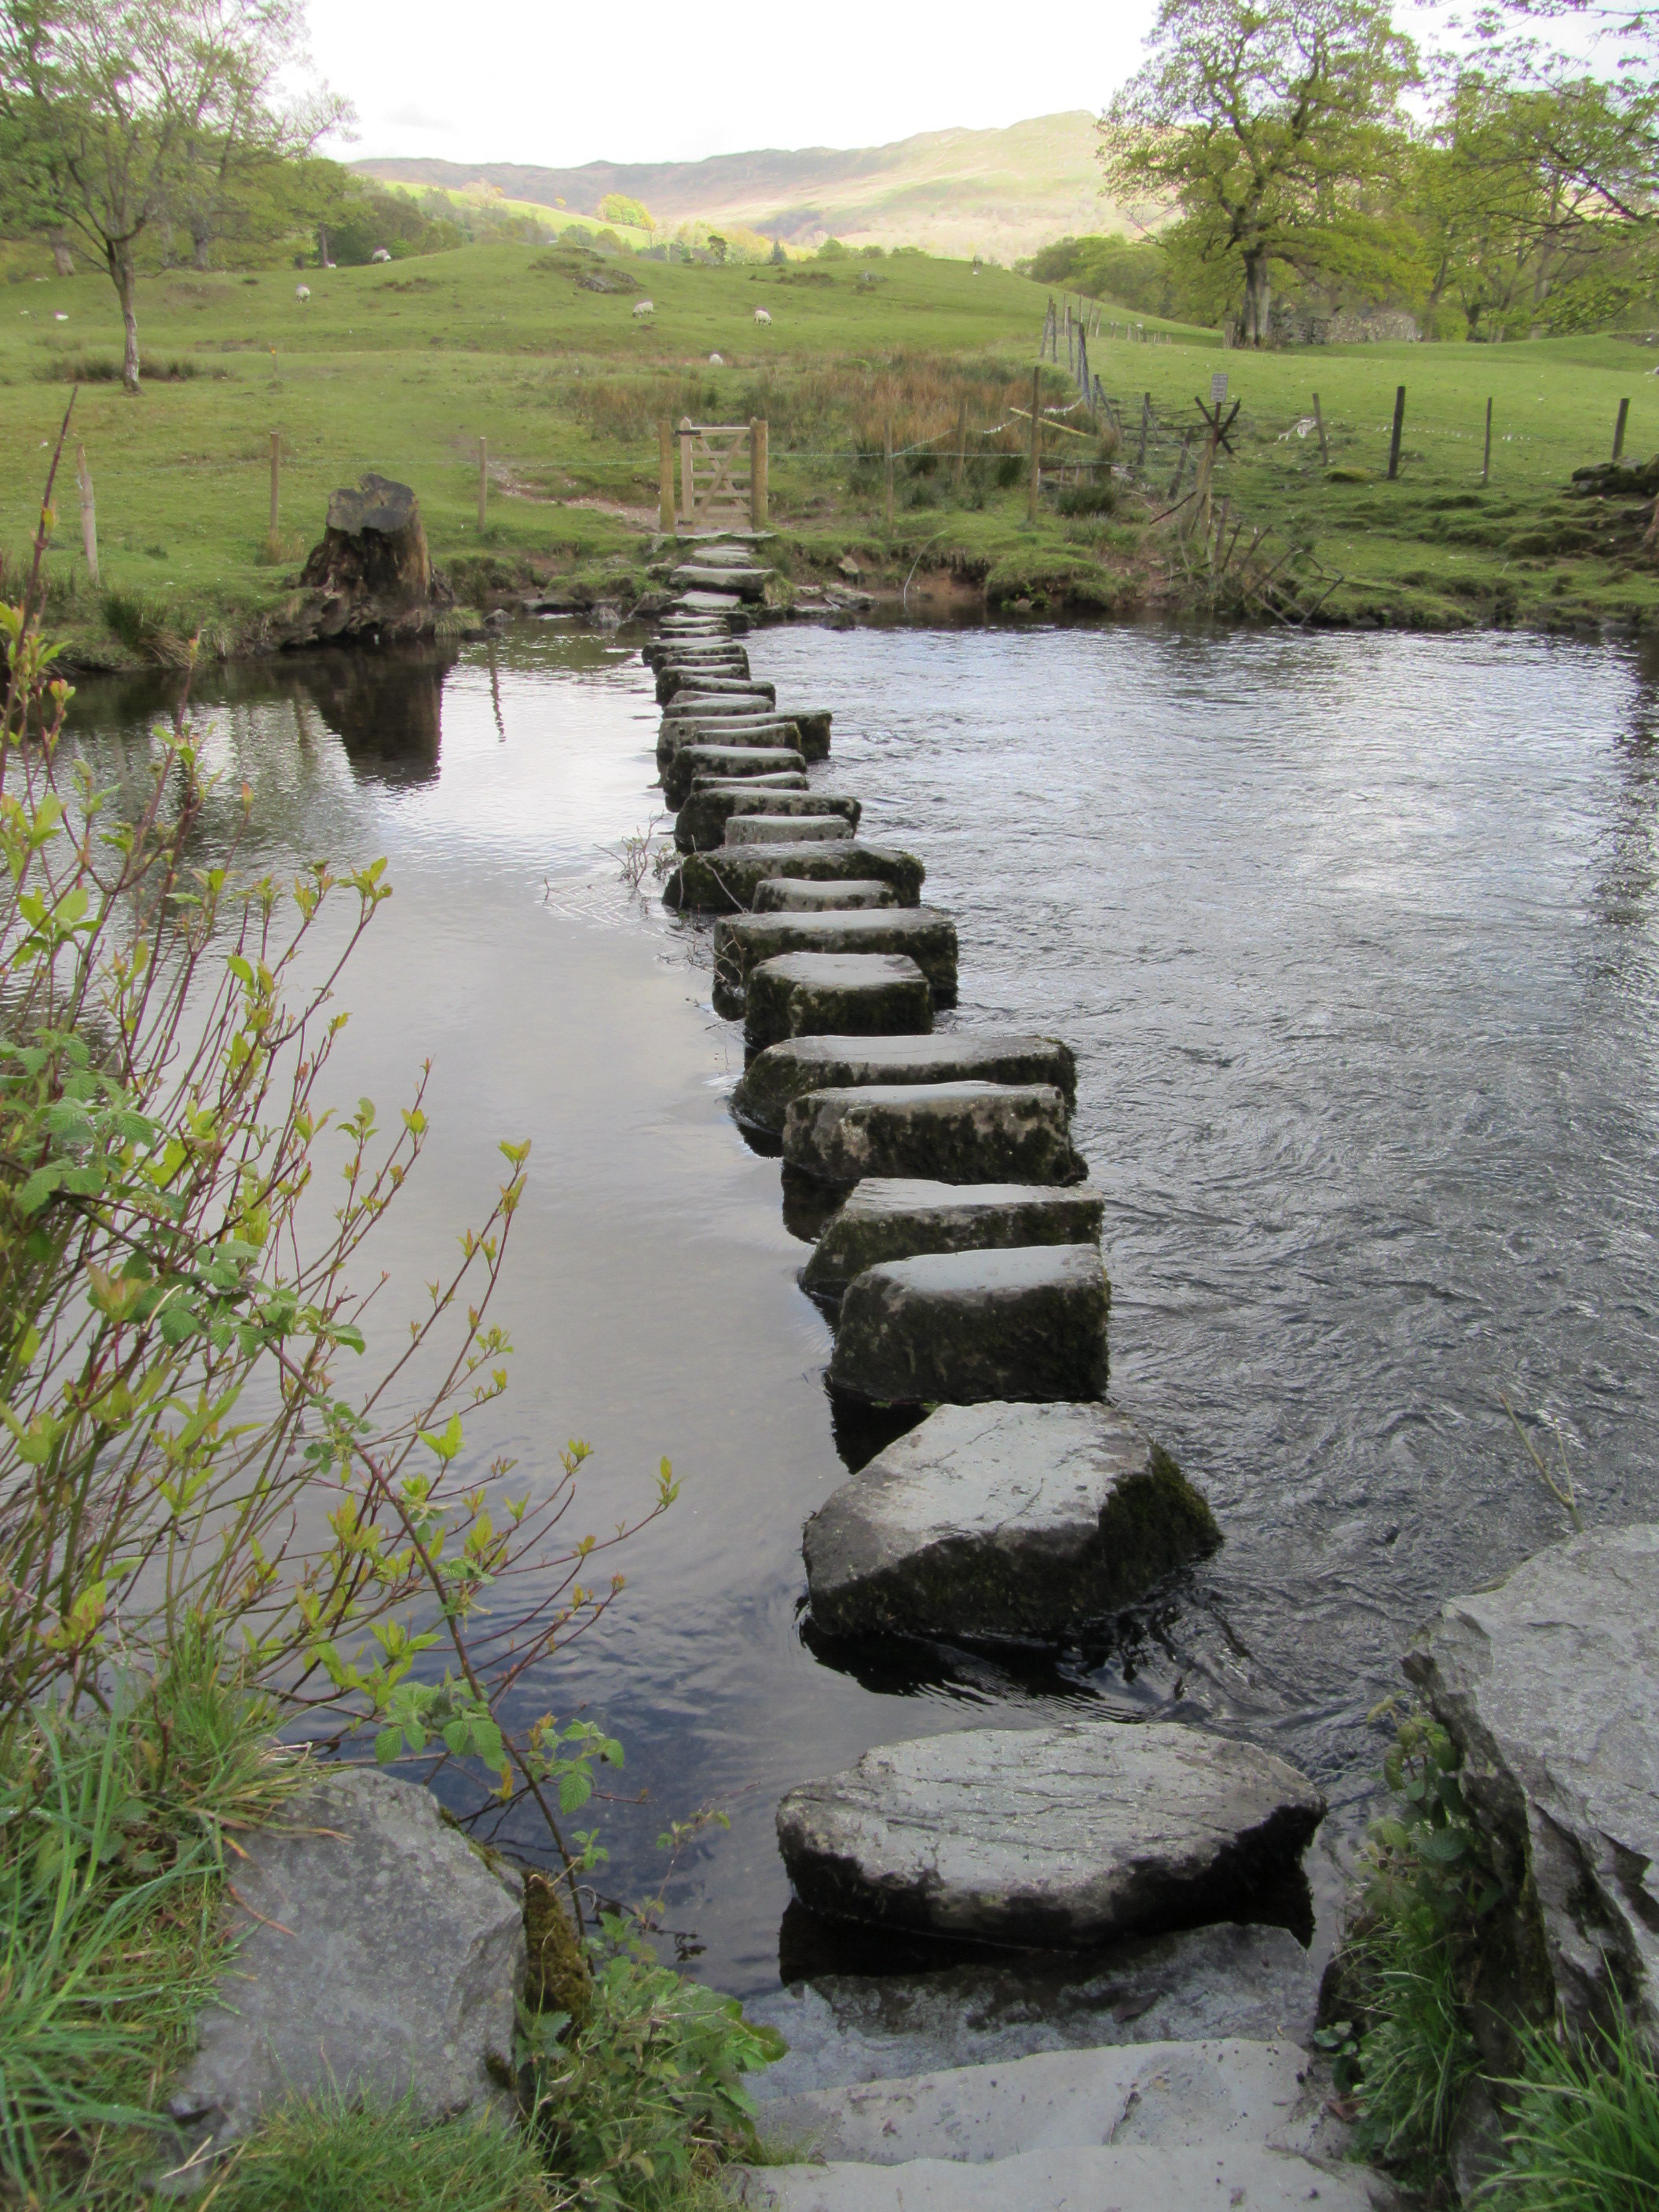 Stepping stones at the River Rothay